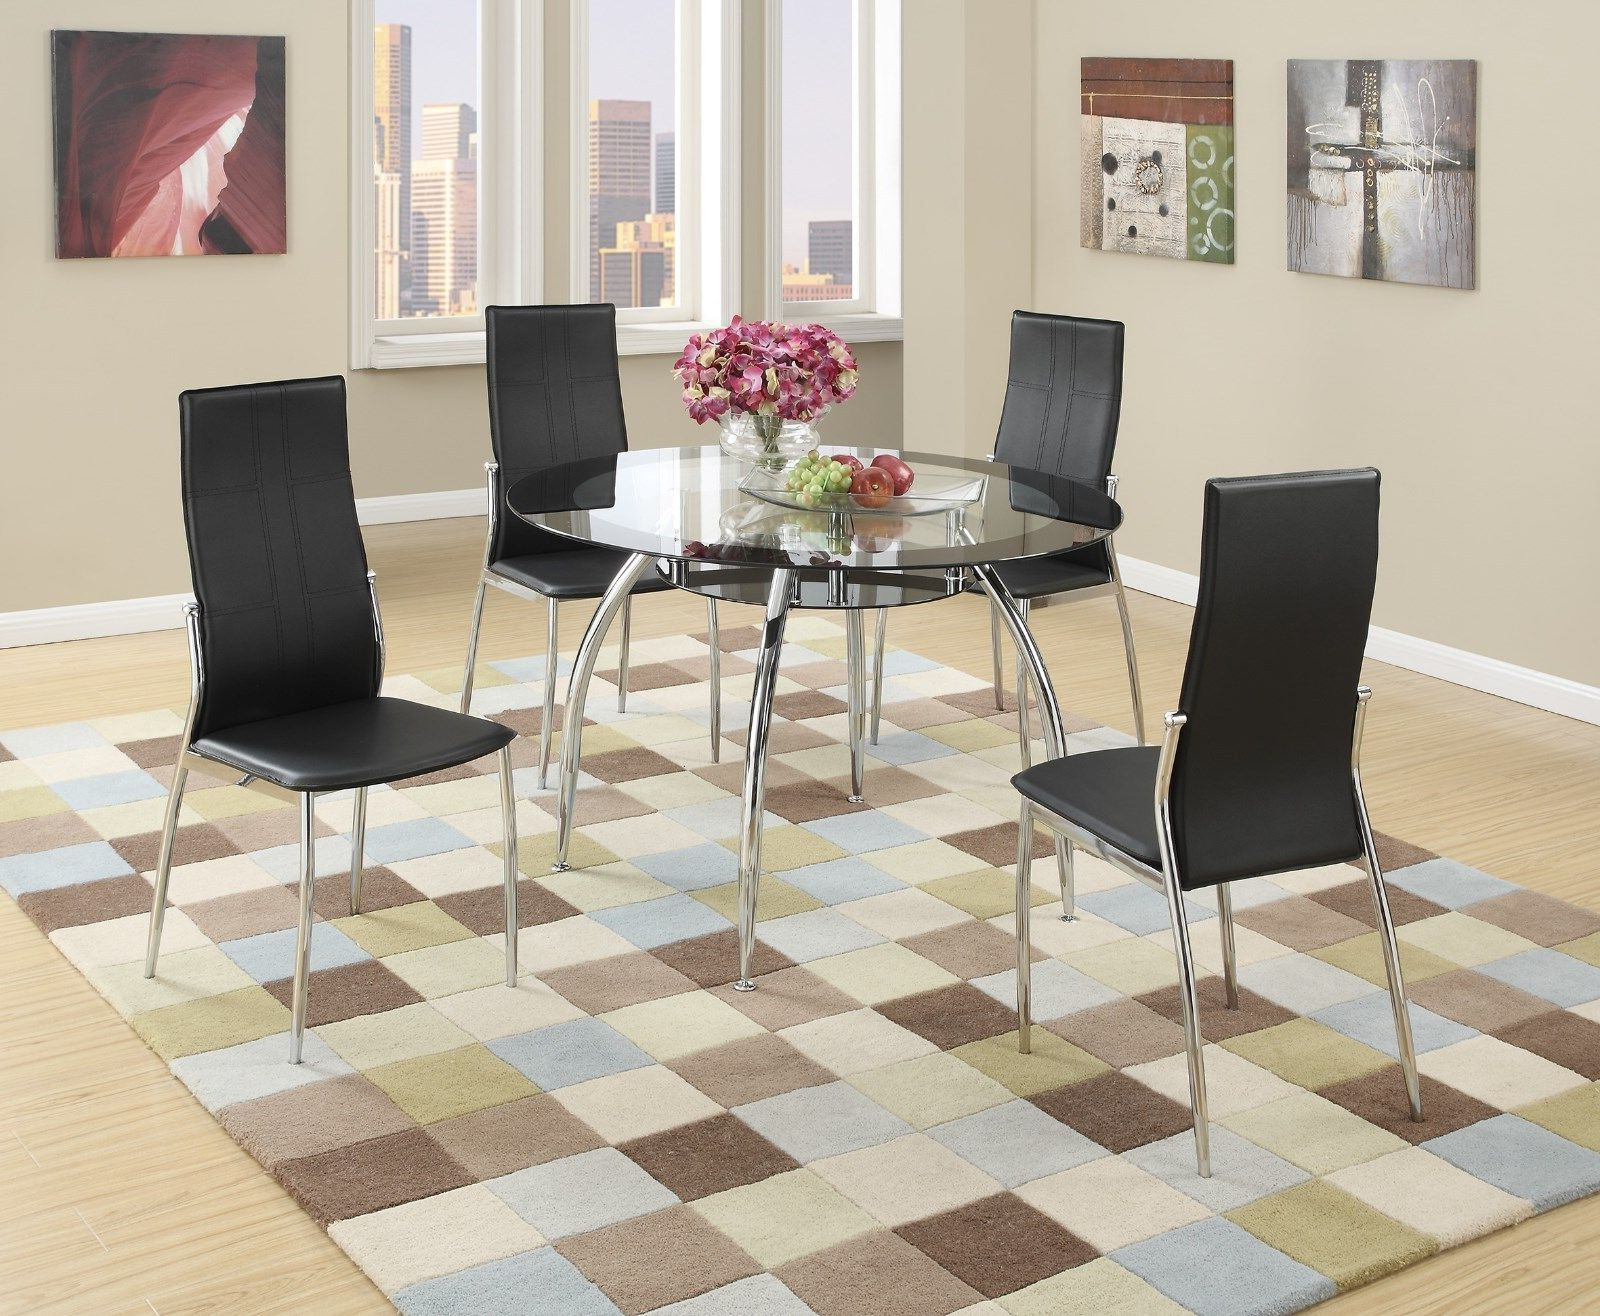 Most Current Details About New Tulsa Ii Modern Round Black Chrome Metal Glass Top Dining Table Kitchen Set With Regard To Modern Round Glass Top Dining Tables (View 20 of 30)